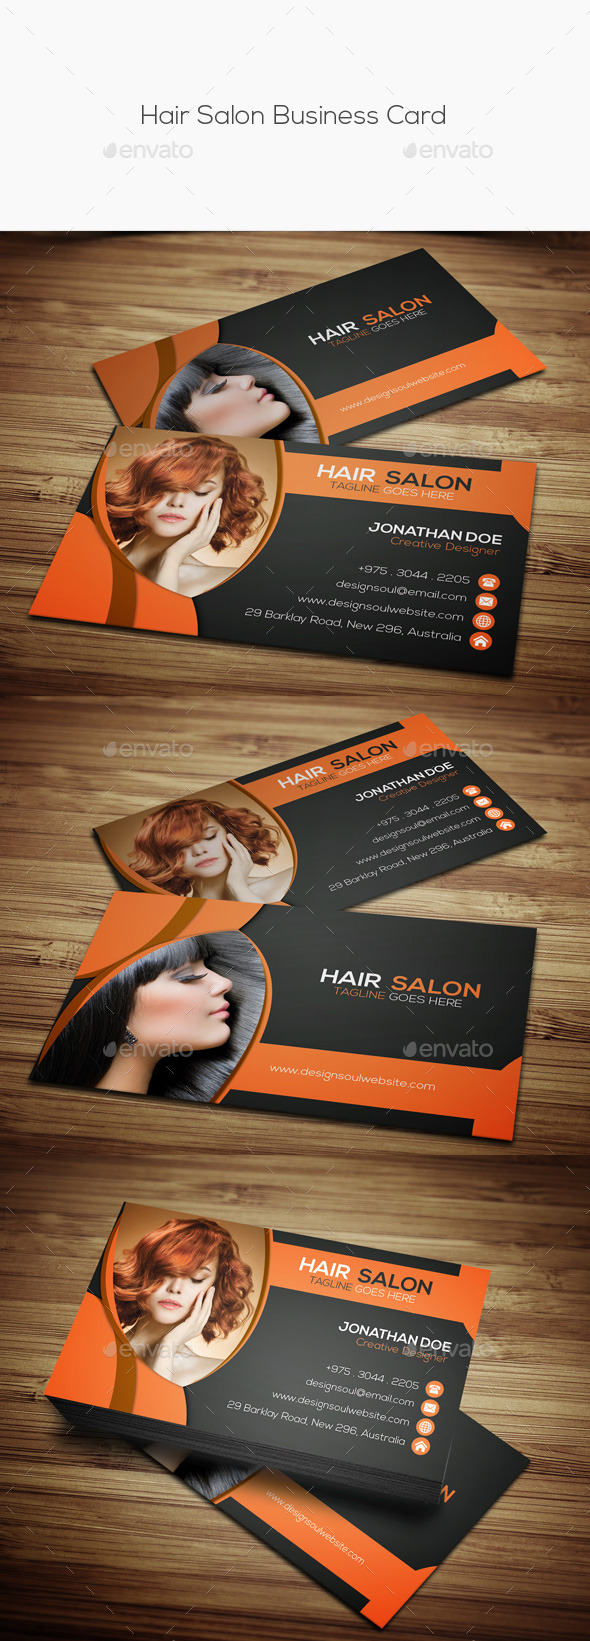 Hair Salon Business Card Templates by designsoul14 | GraphicRiver